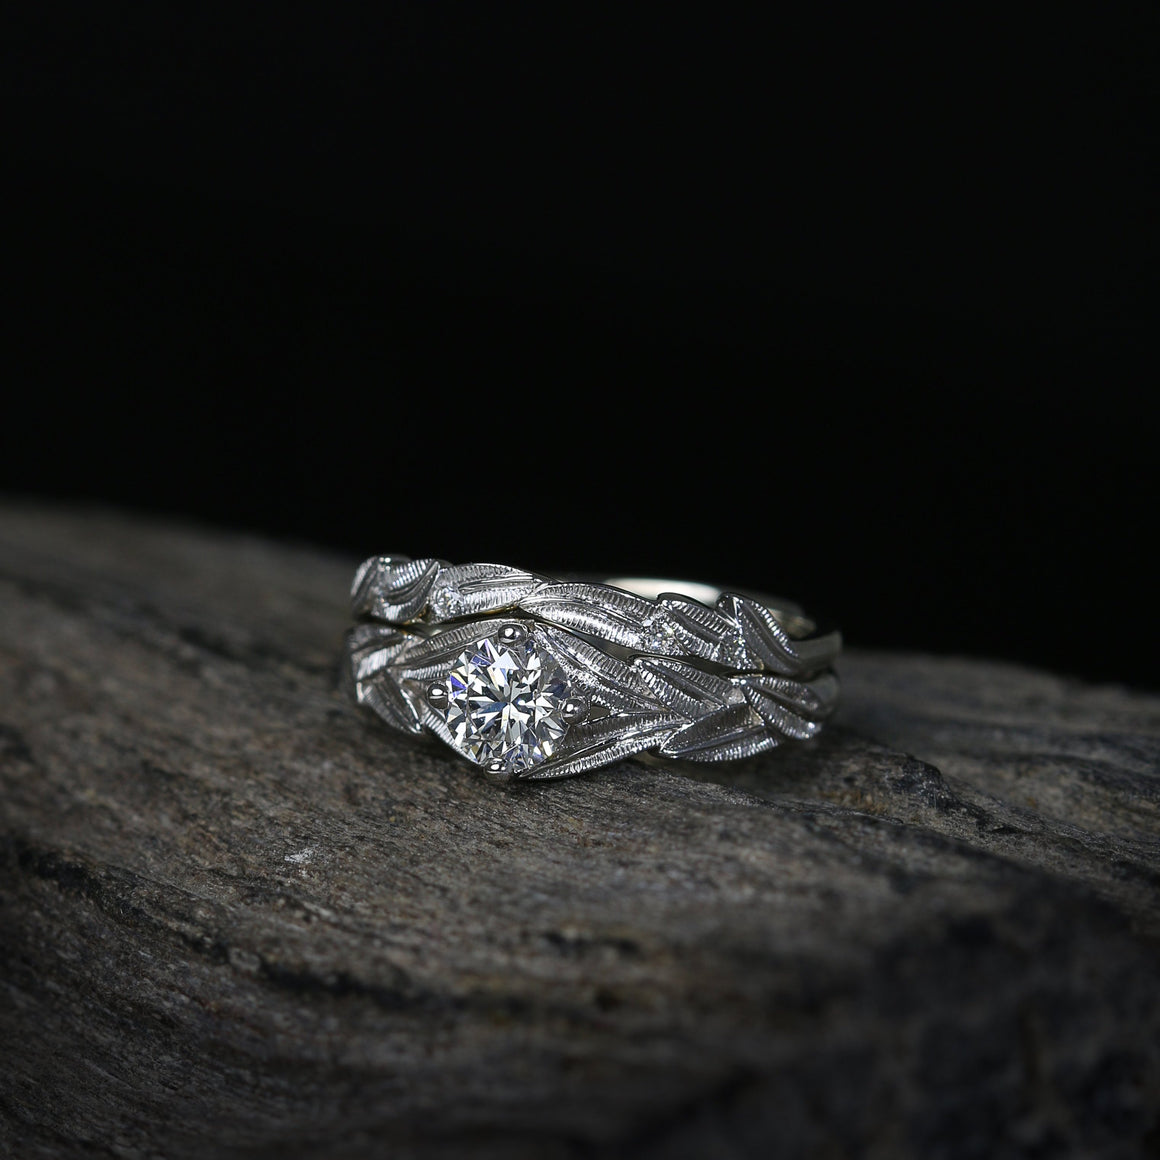 Botanica Engagement Ring Set in White Gold